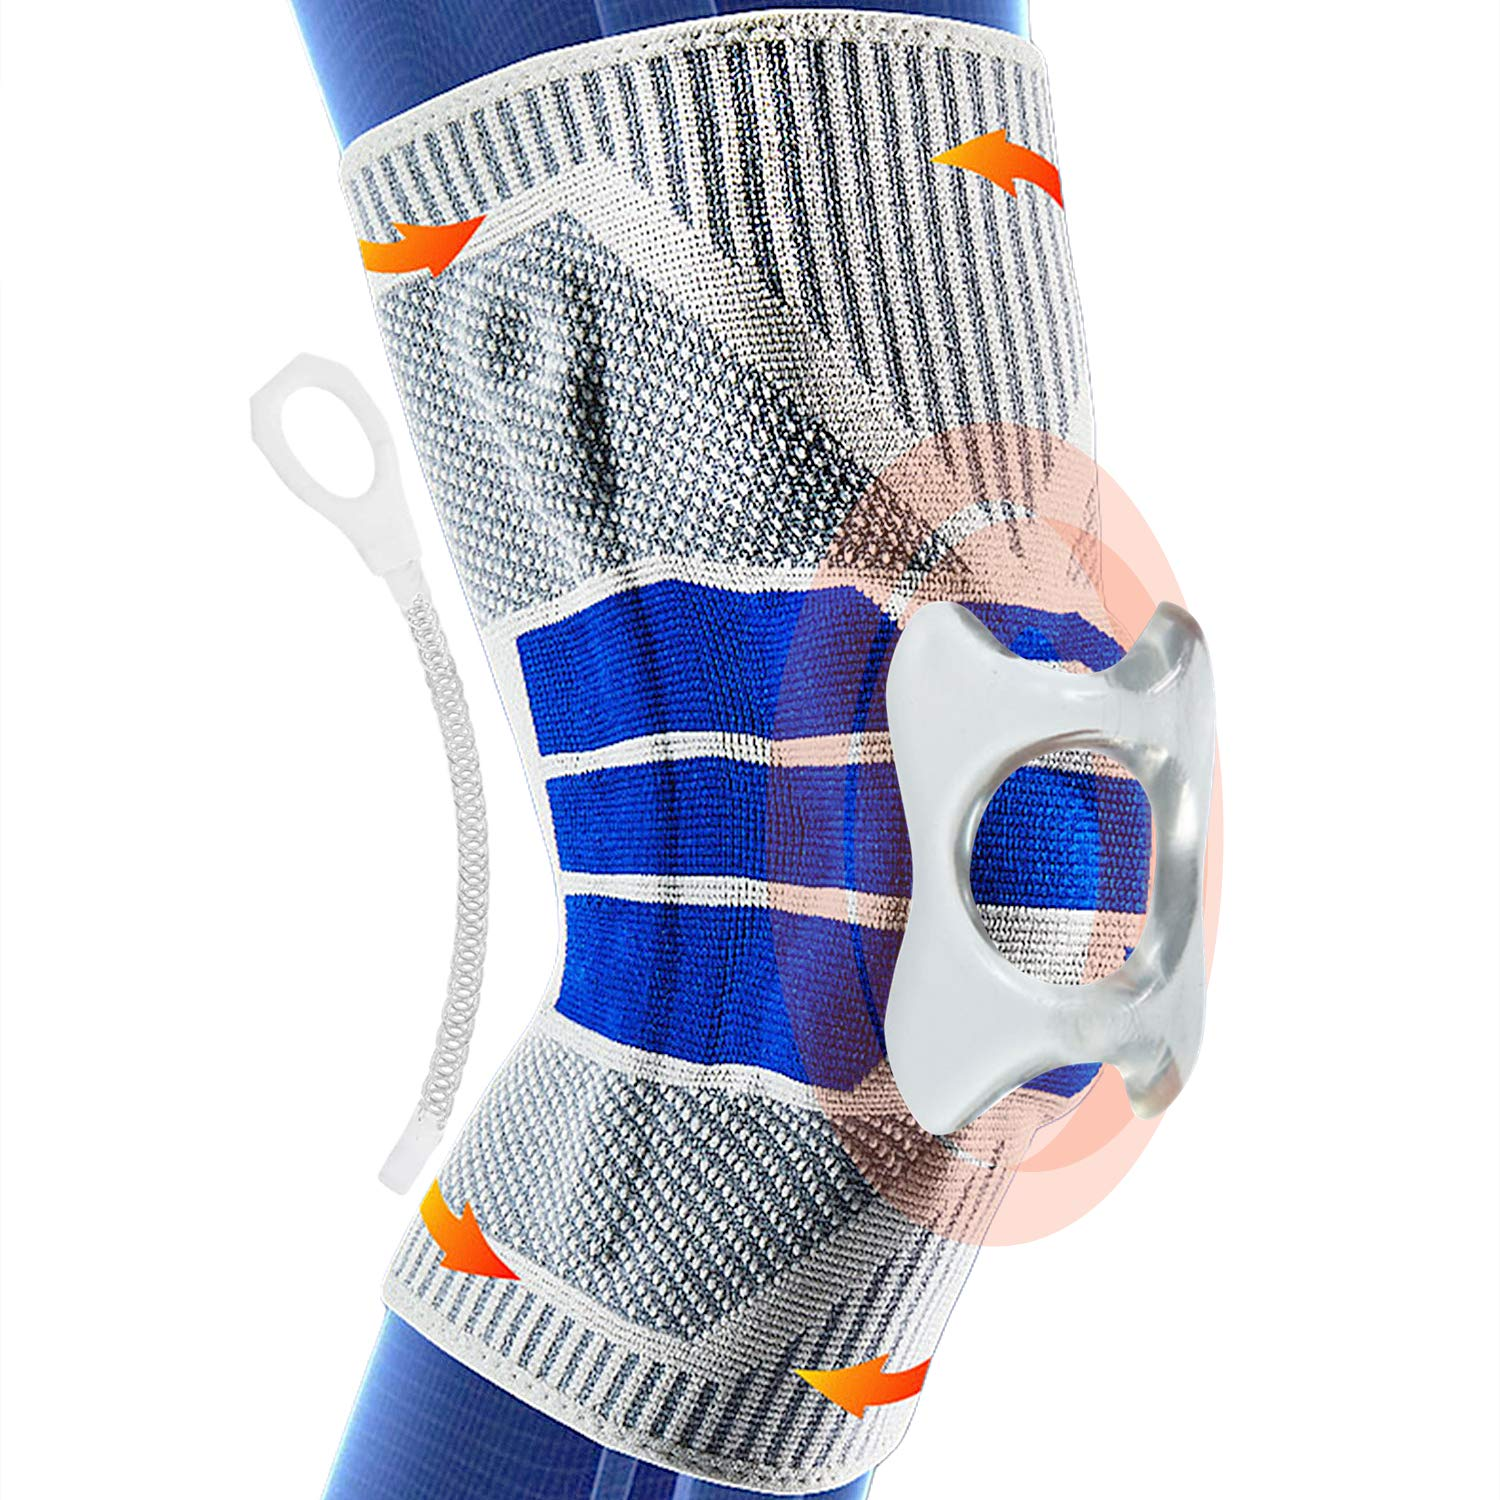 Knee Braces for Knee Pain, Knee Compression Sleeves with Side Stabilizers & Patella Silicone Pads for Knee Support, Meniscus Tear, Reduce Strain & Swelling, Working Out, Pain Relief for Men Women - XL